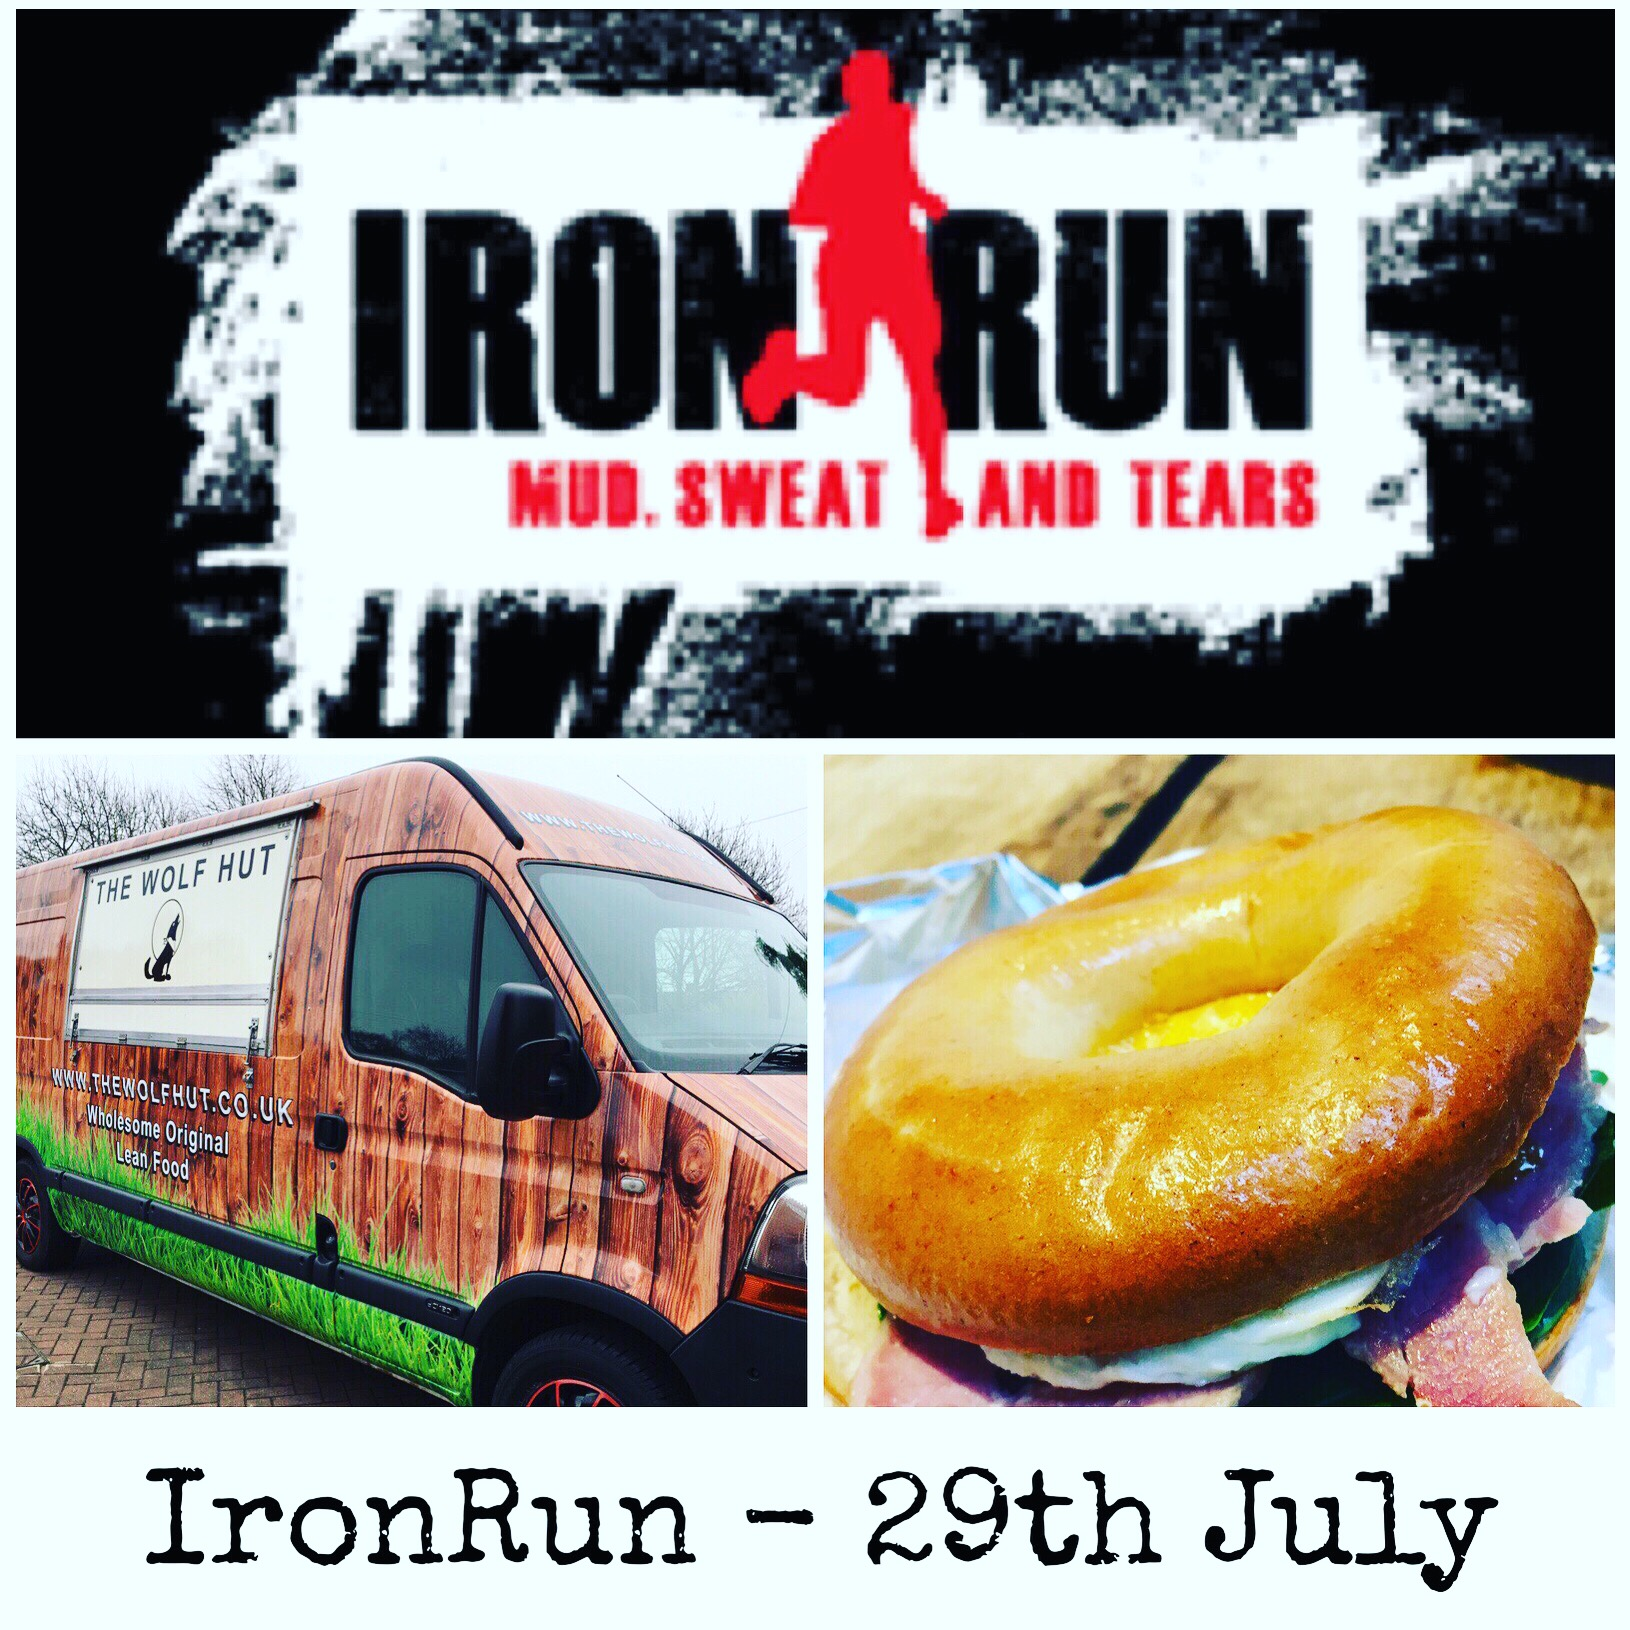 See you at Iron Run!